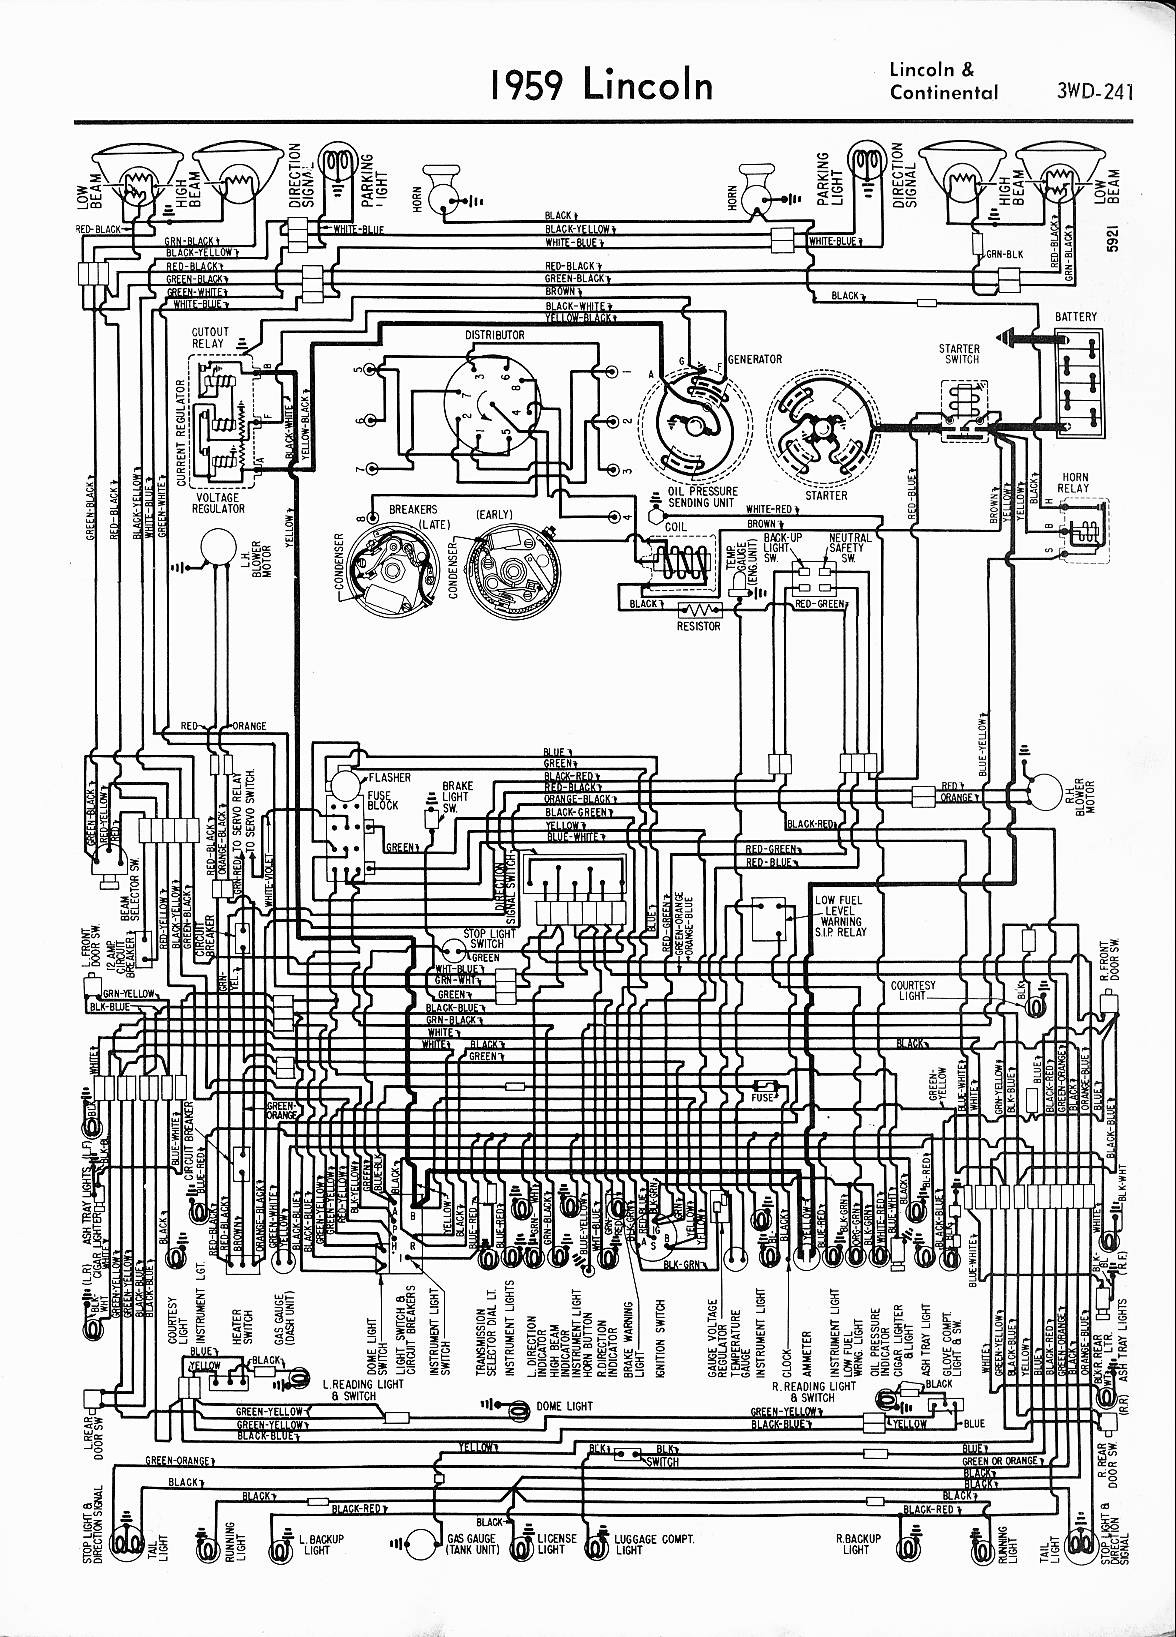 lincoln 4 6 engine diagram 1996 lincoln engine diagram 1996 wiring diagrams